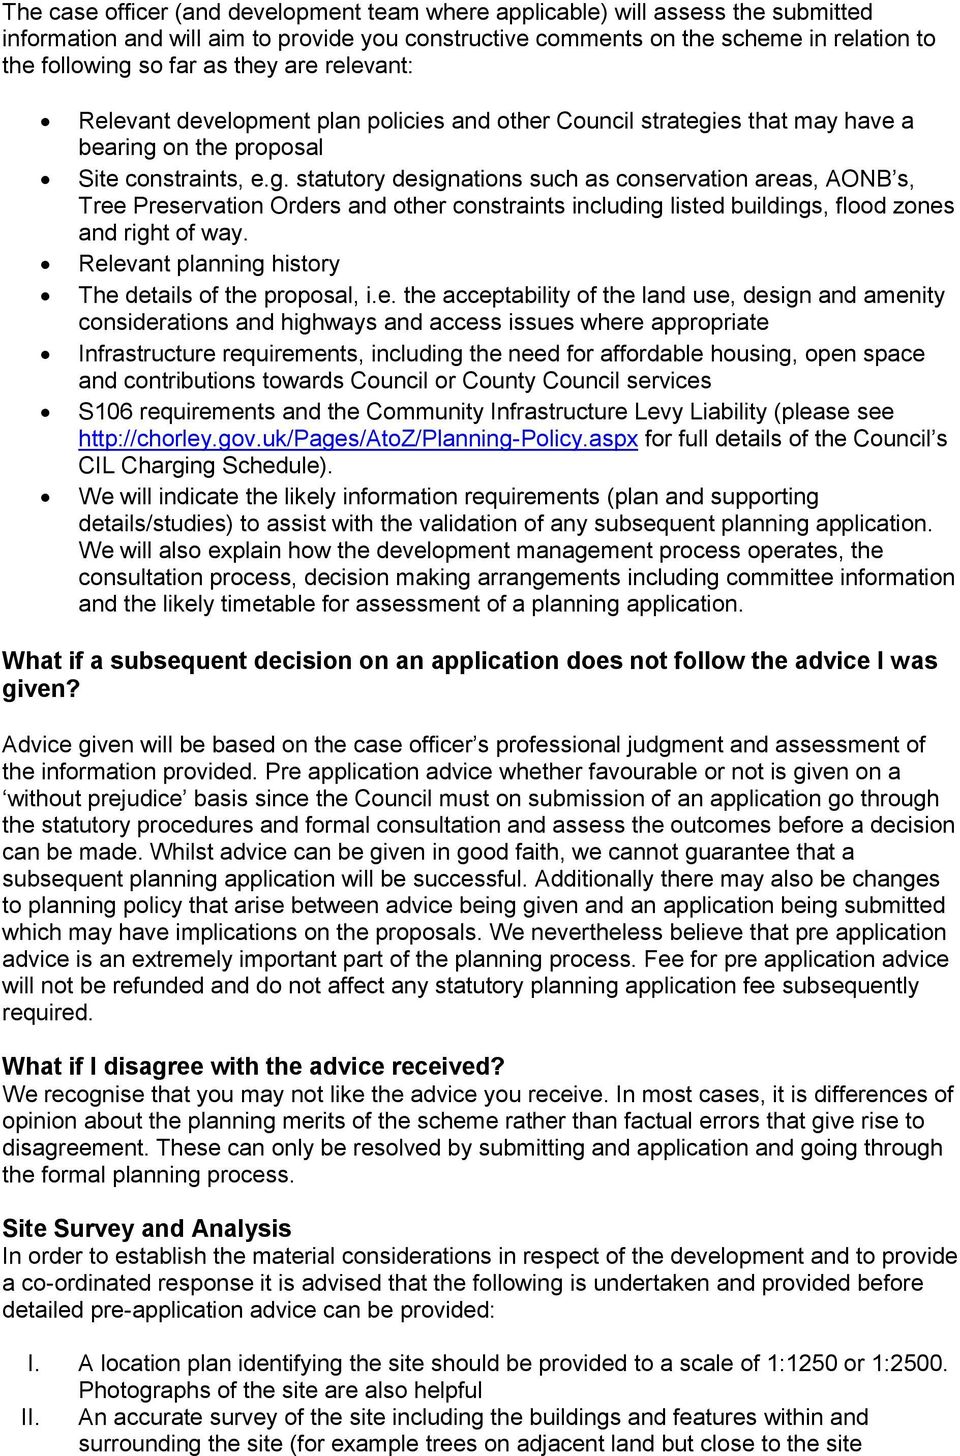 es that may have a bearing on the proposal Site constraints, e.g. statutory designations such as conservation areas, AONB s, Tree Preservation Orders and other constraints including listed buildings, flood zones and right of way.